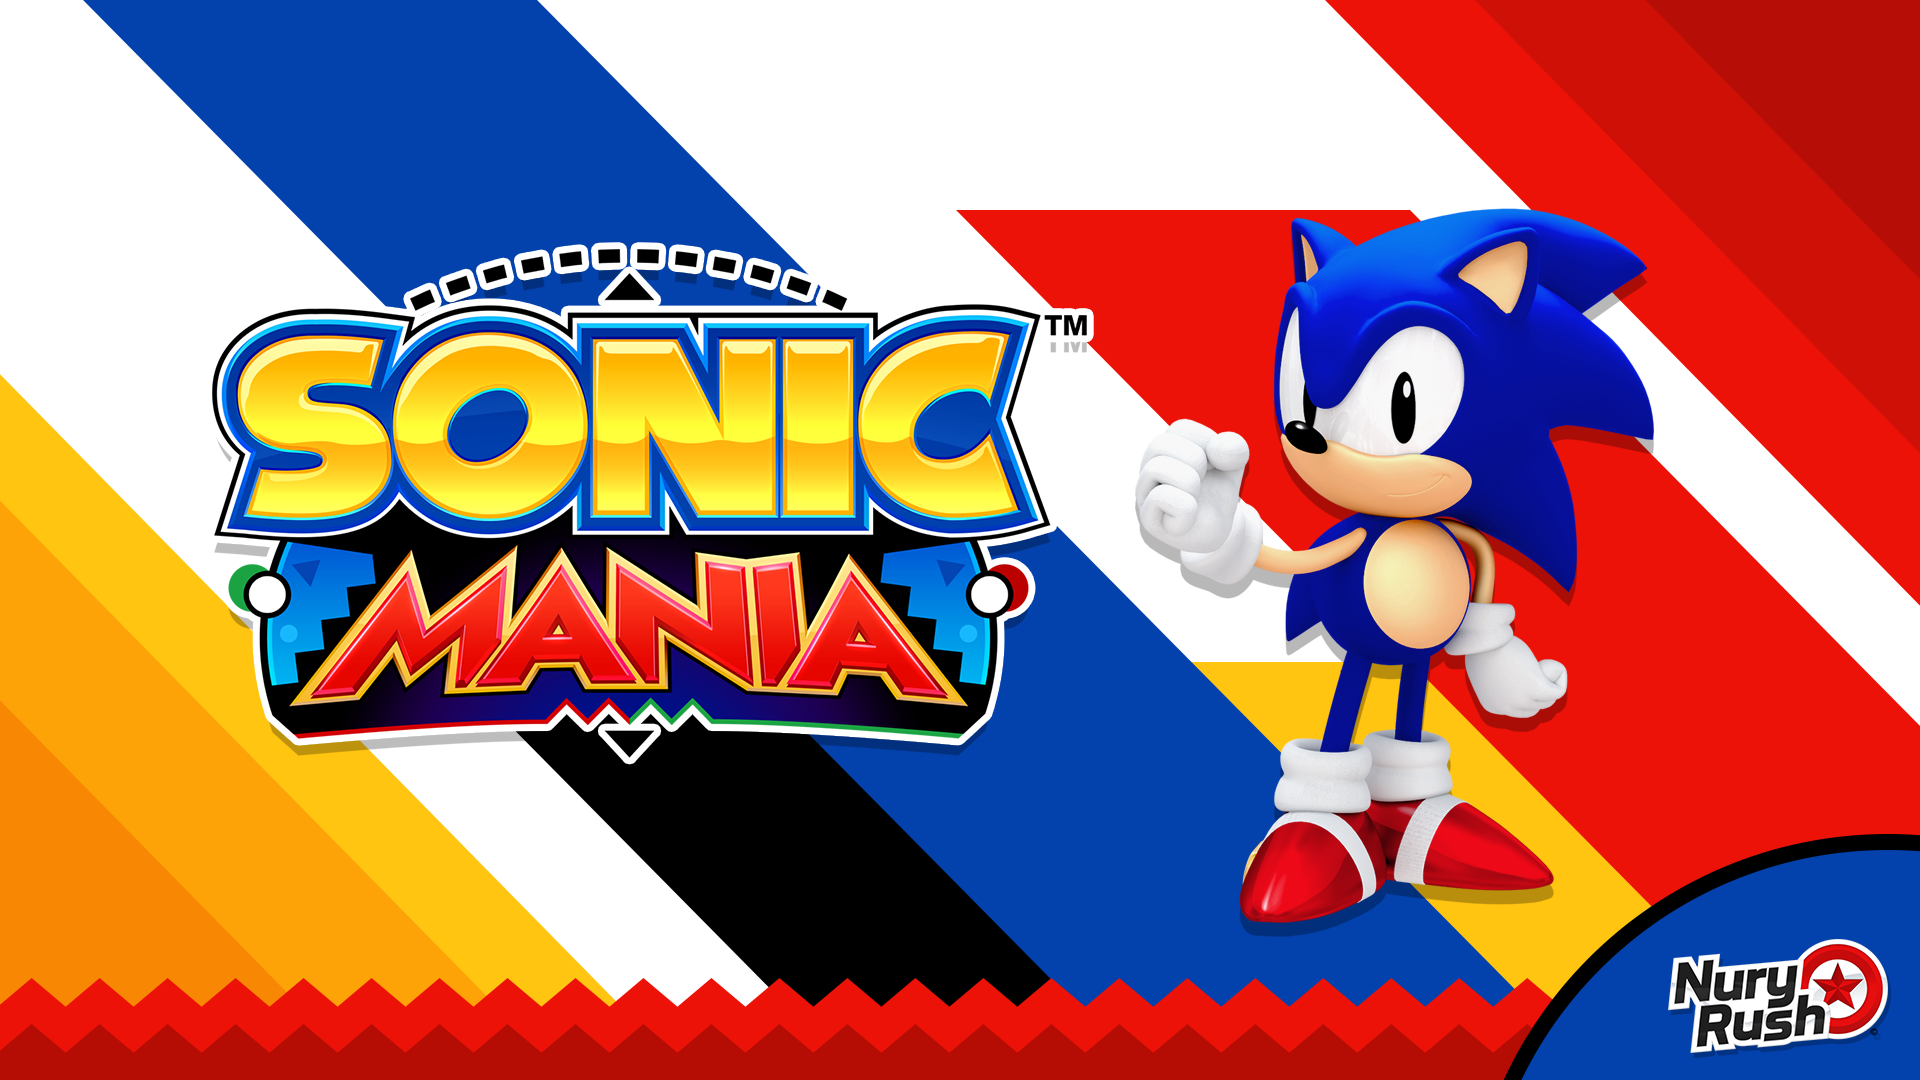 Download Sonic Mania Hd Wallpapers Read Games Review Play Online